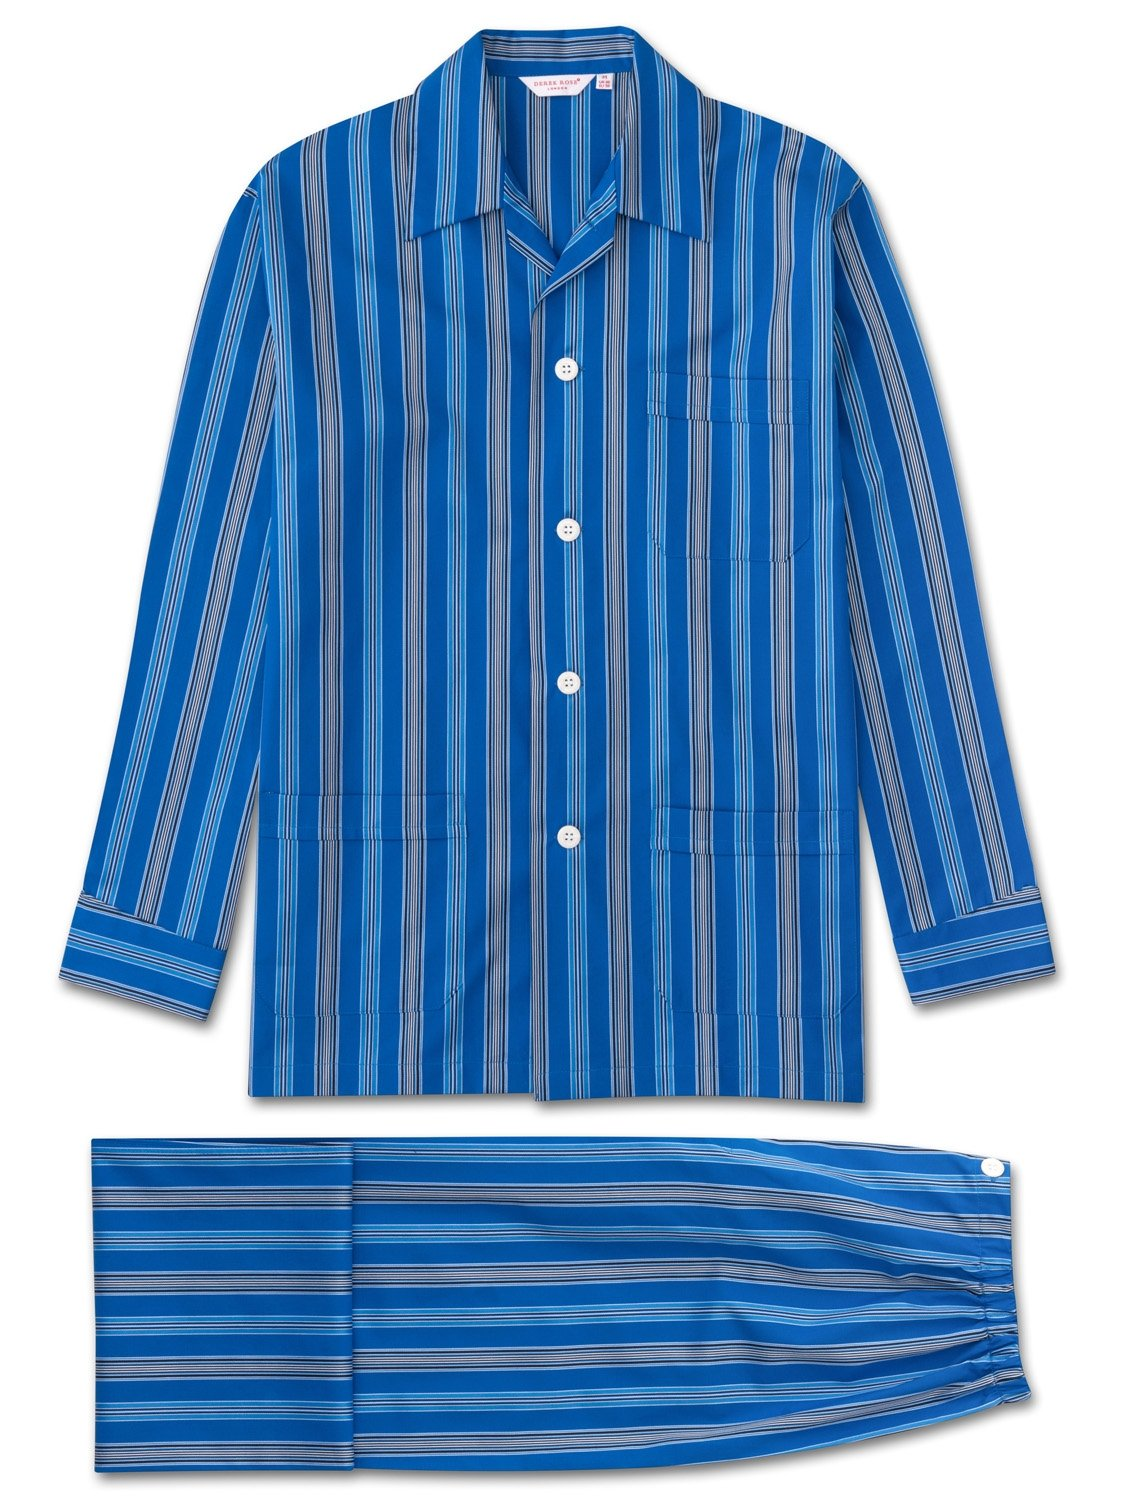 Men's Classic Fit Pyjamas Royal 208 Cotton Satin Stripe Blue